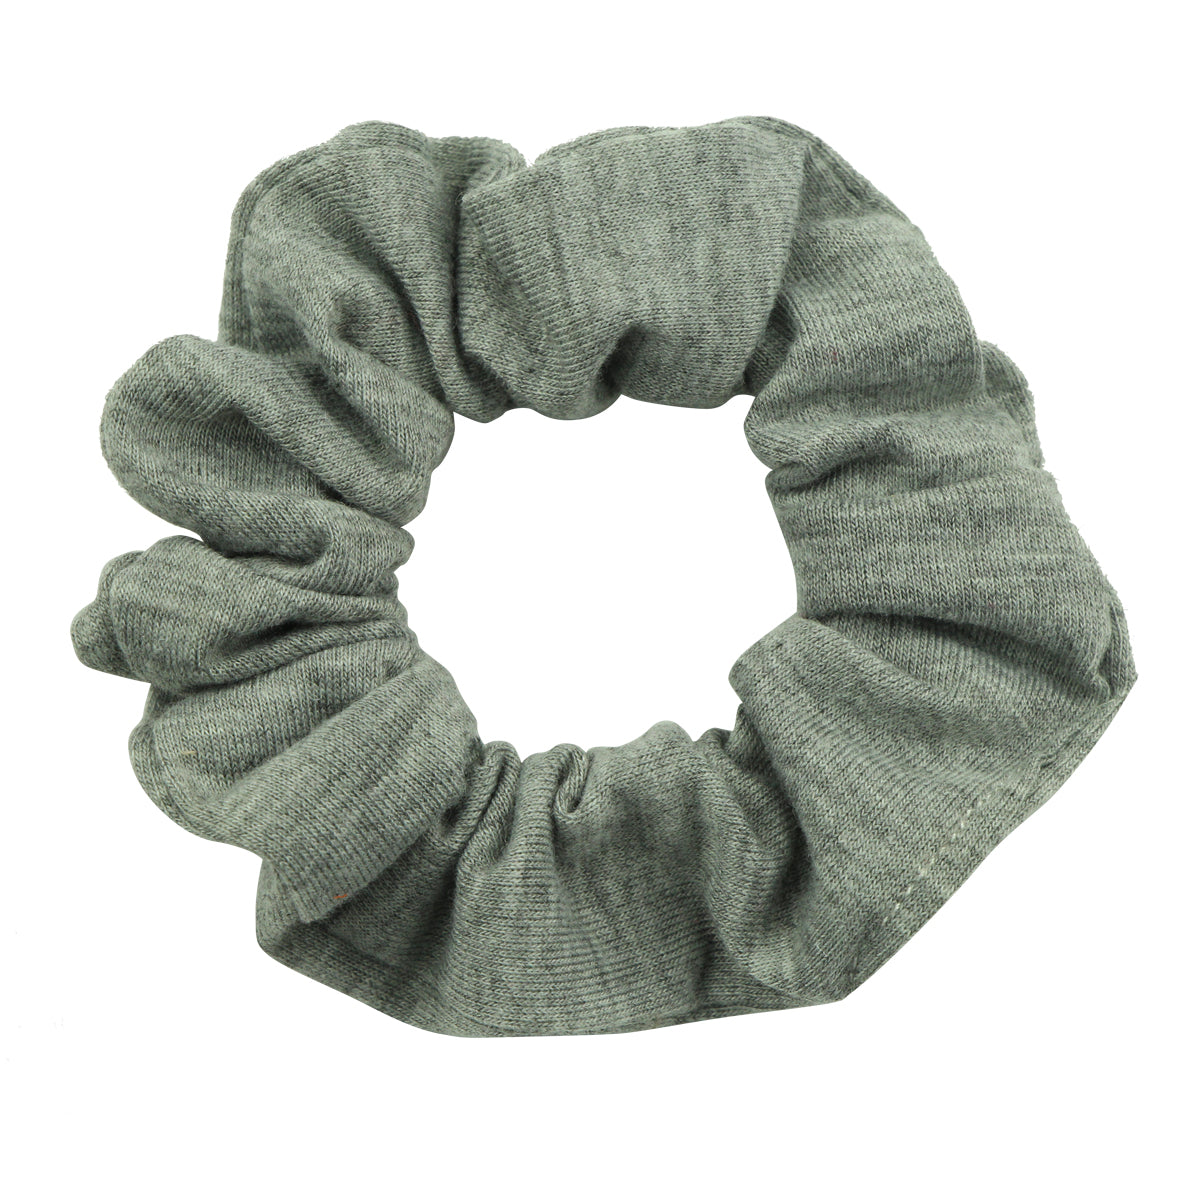 outdoor sports gymnastics scrunchies, stretchy hair scrunchies ponytail holder5608 - SOHOBUCKS CO.,LIMITED